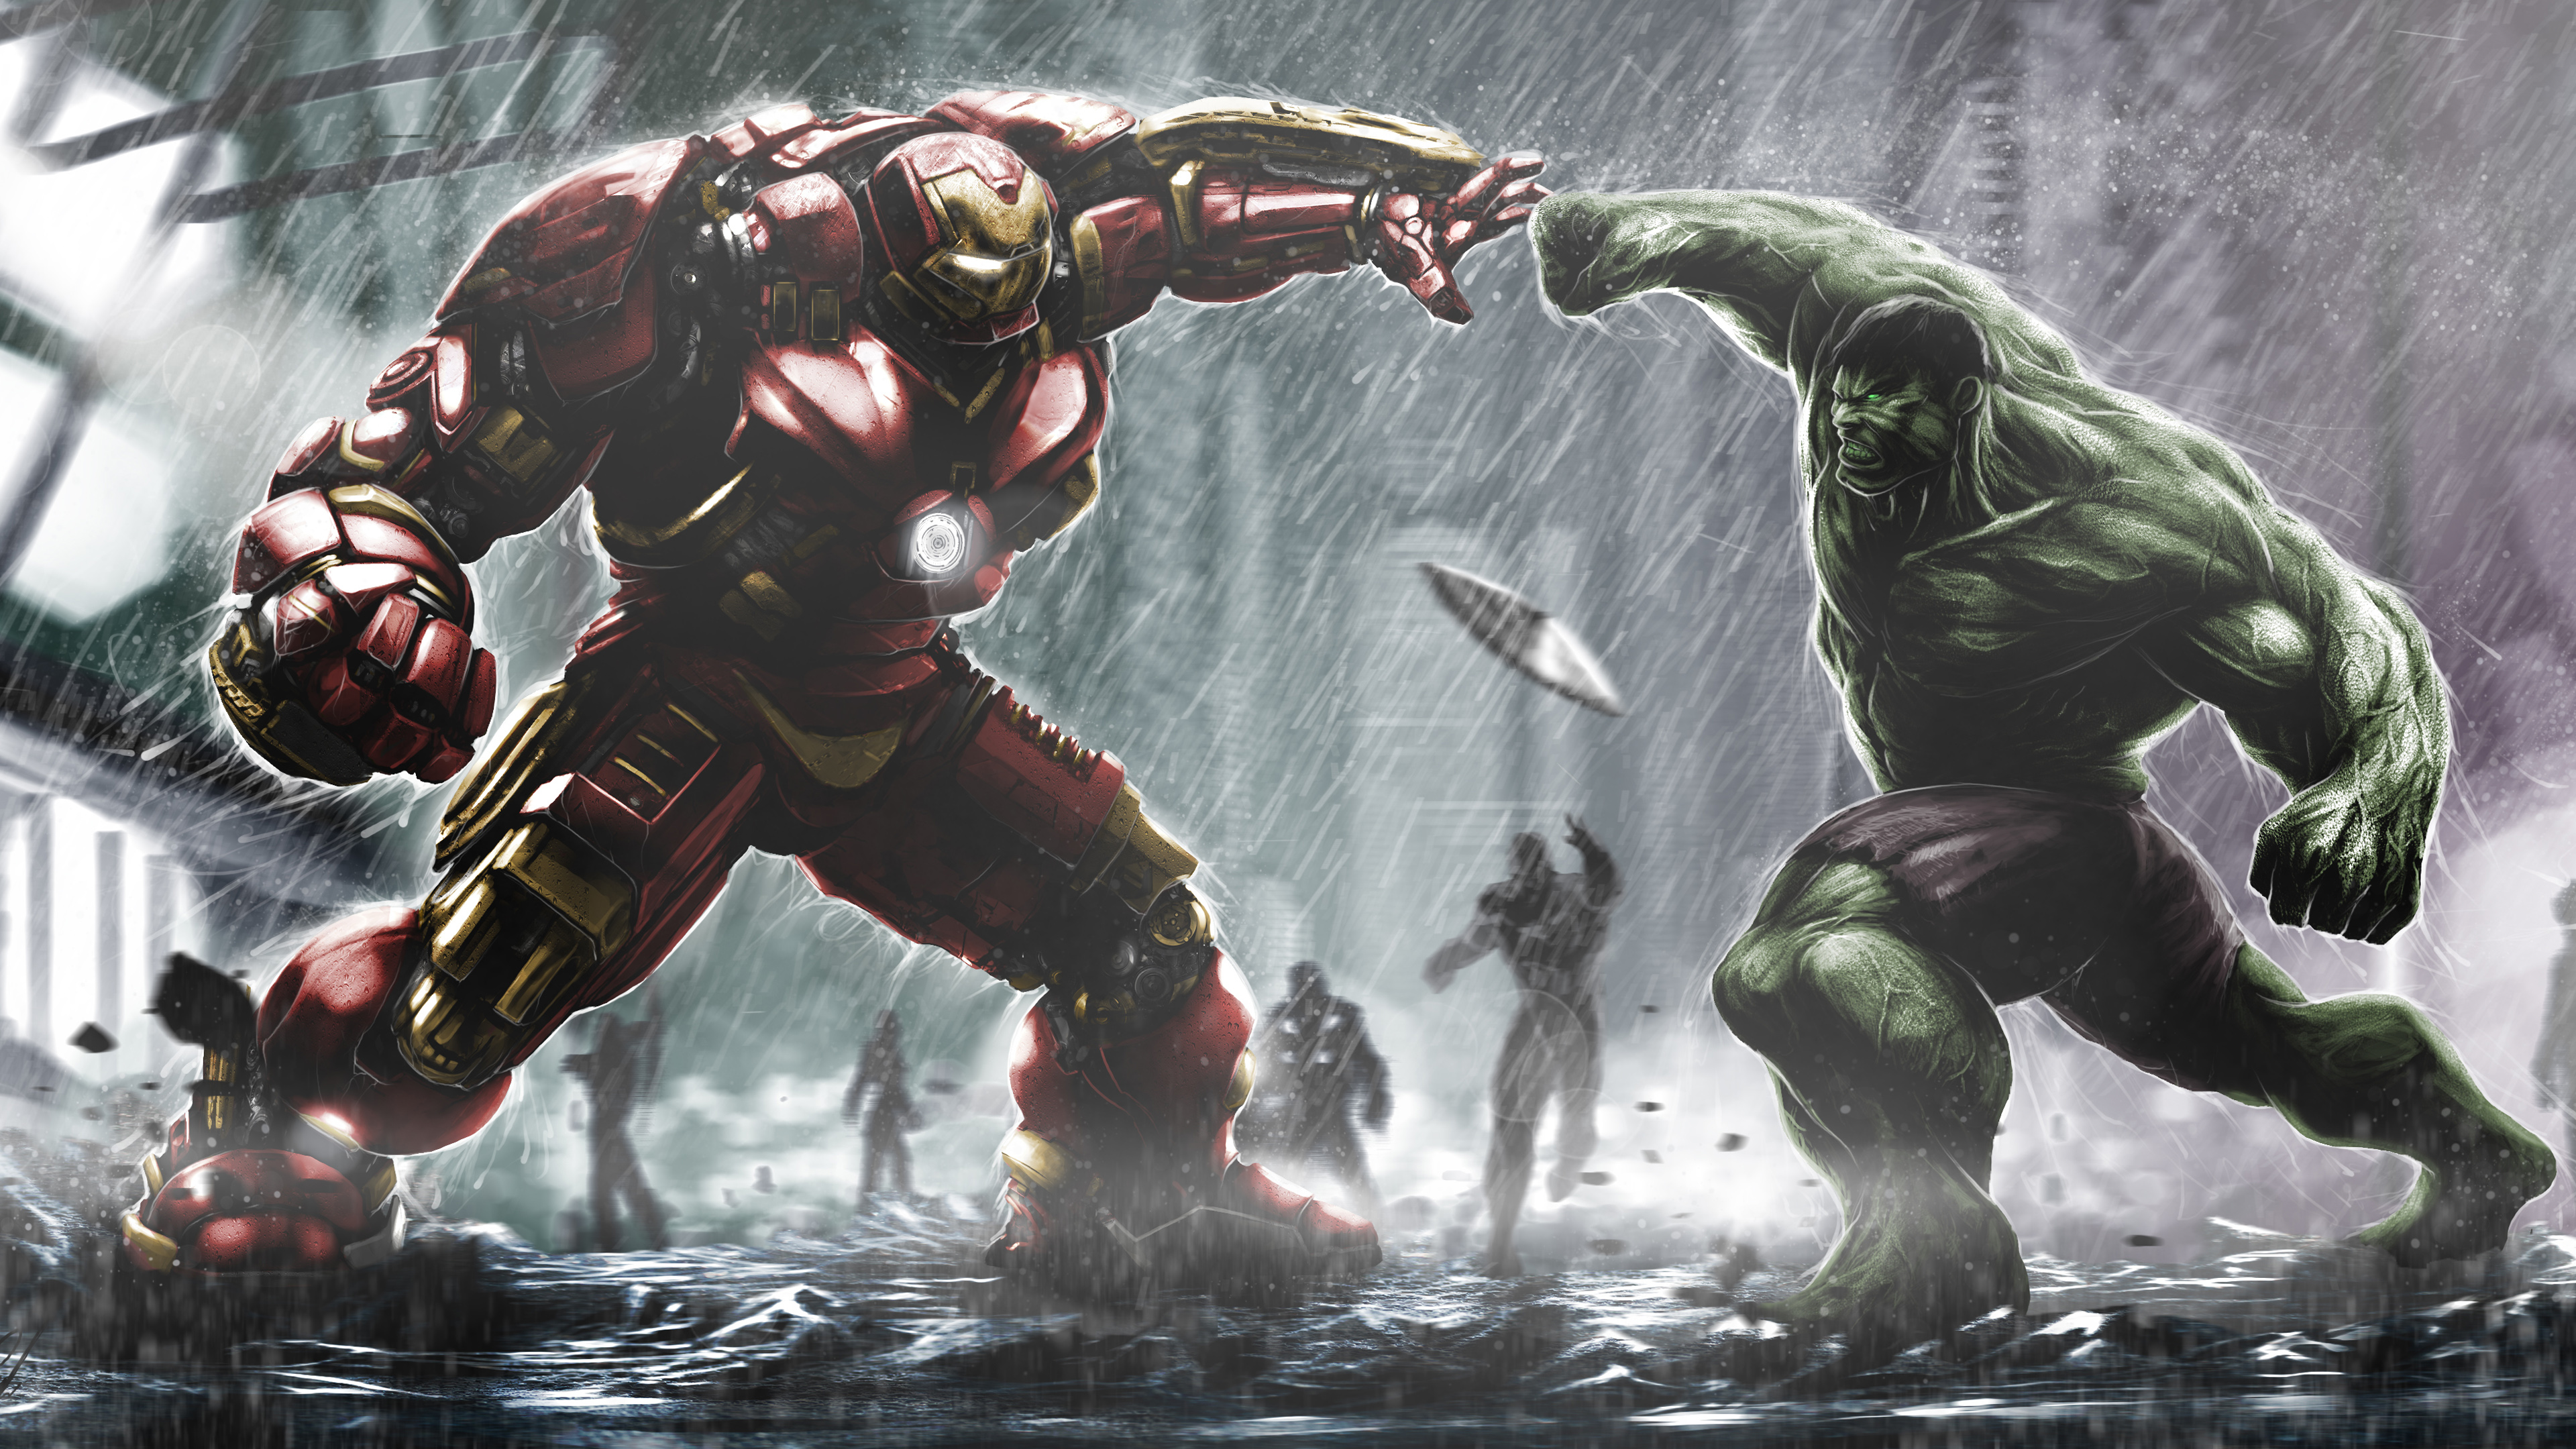 hulk 4K wallpapers for your desktop or mobile screen and easy 3840x2160